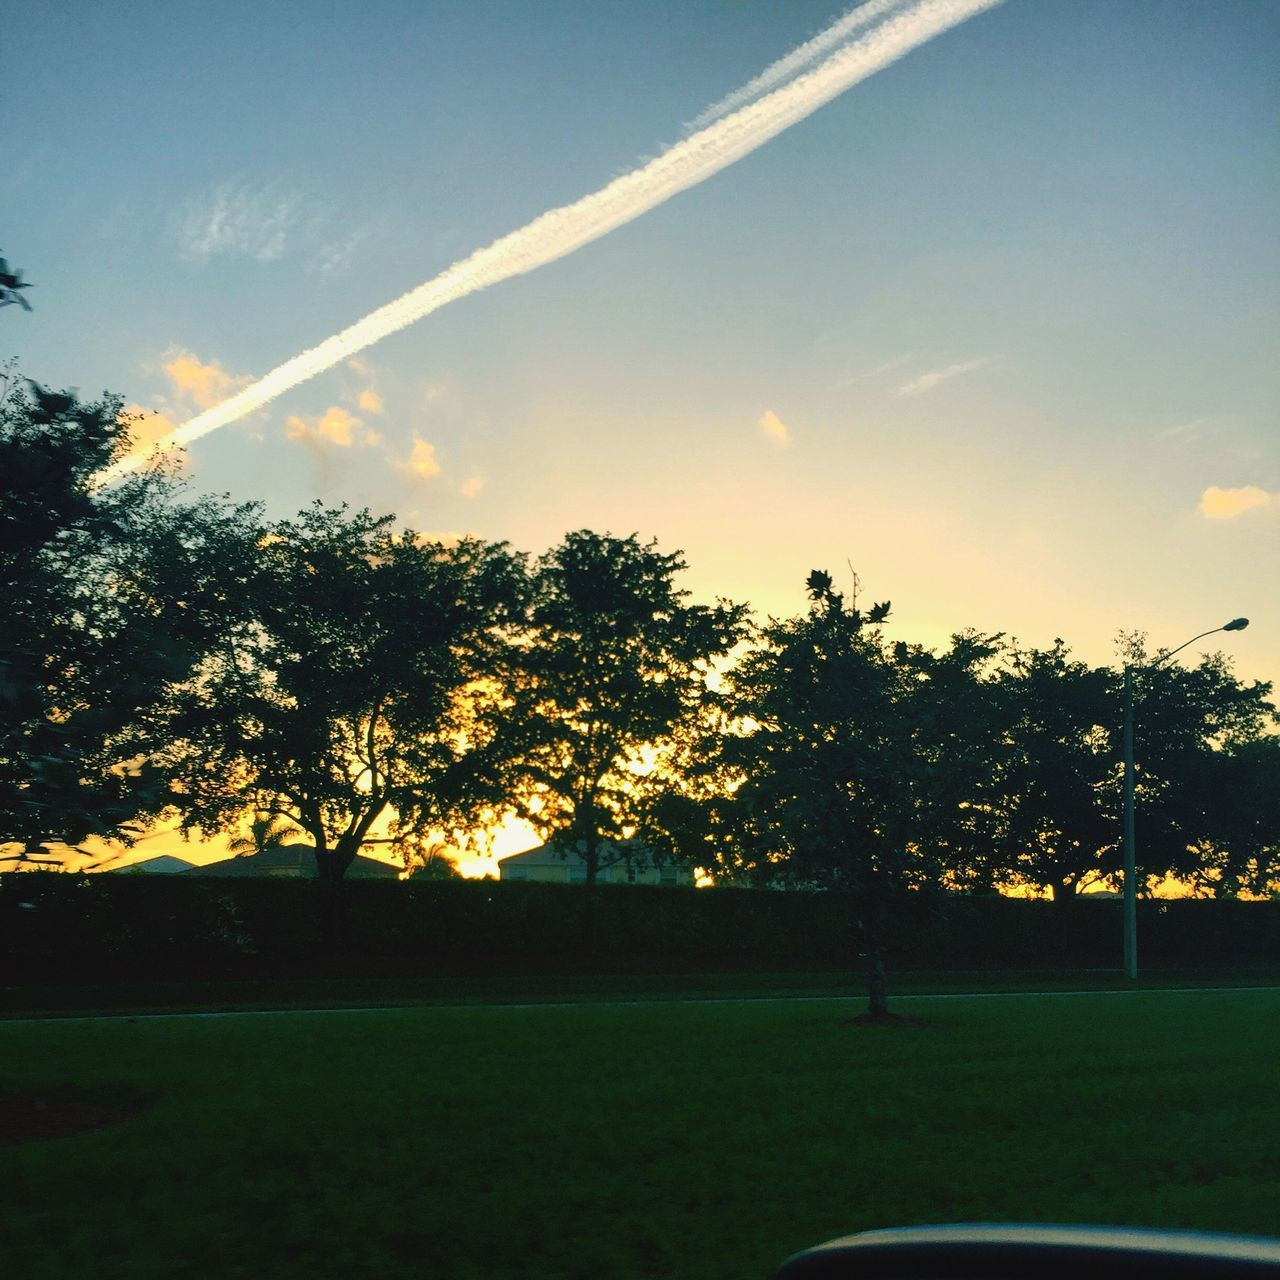 tree, nature, beauty in nature, grass, landscape, no people, growth, sunset, tranquility, outdoors, scenics, vapor trail, sky, contrail, day